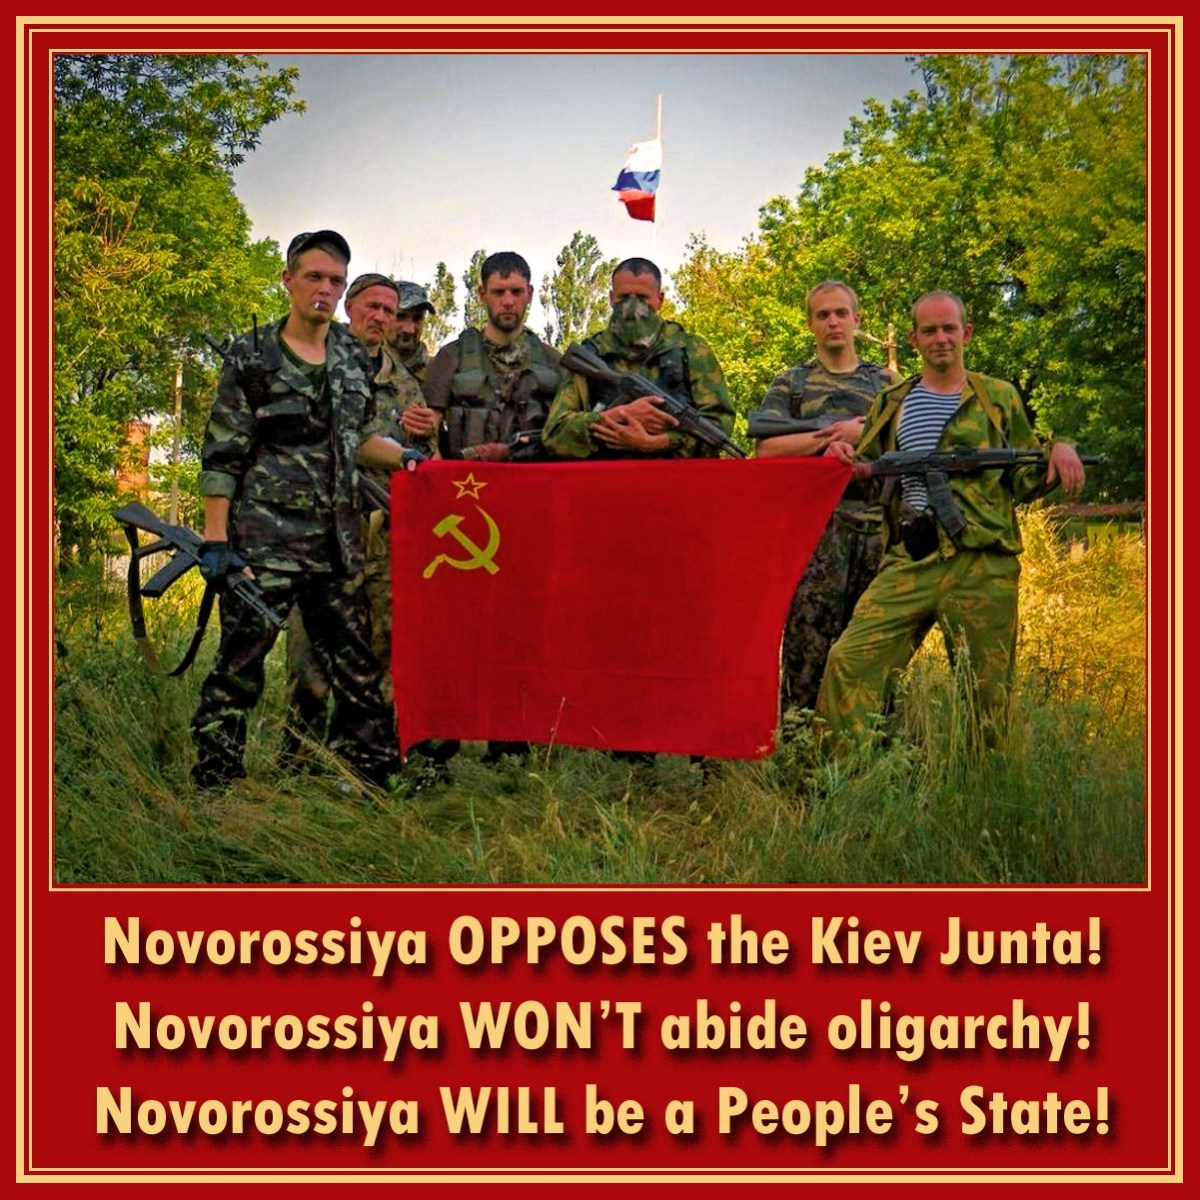 00 Novorossiya OPPOSES the Junta! 22.08.14